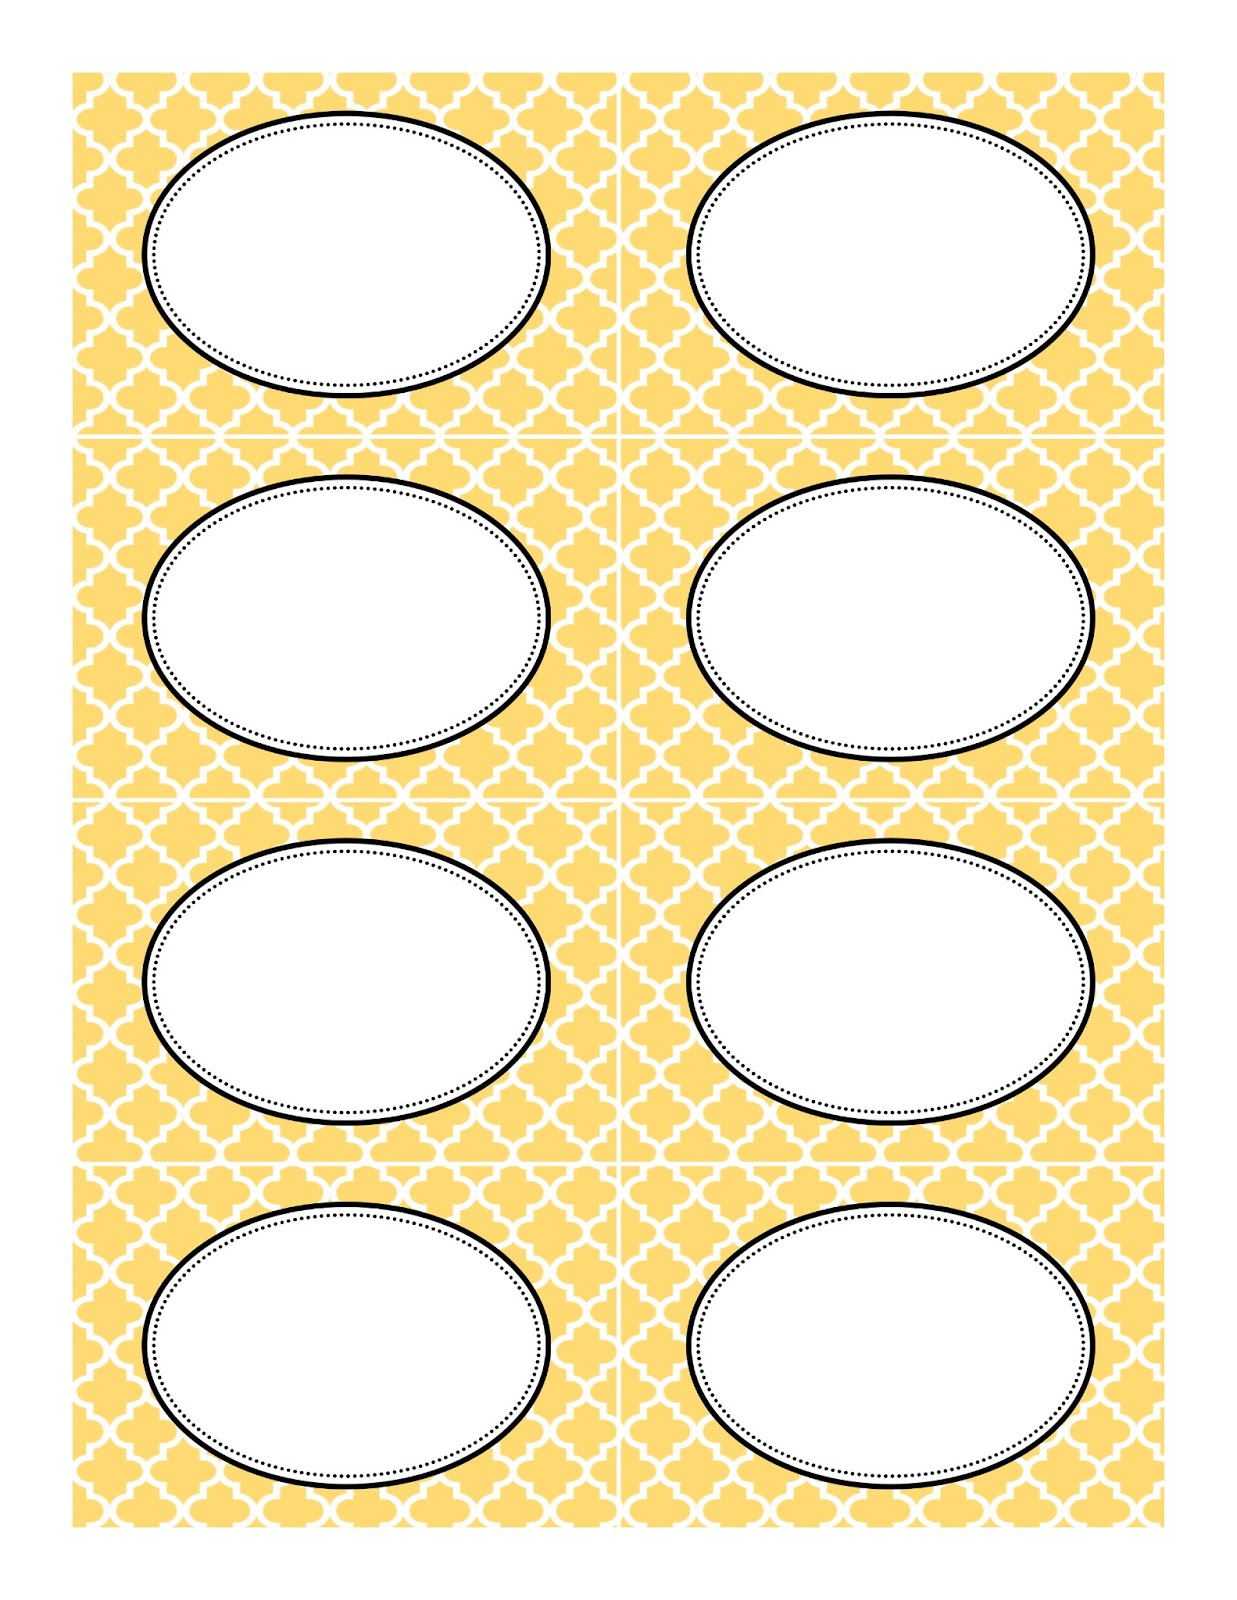 We have created some free printable candy buffet labels to tie around